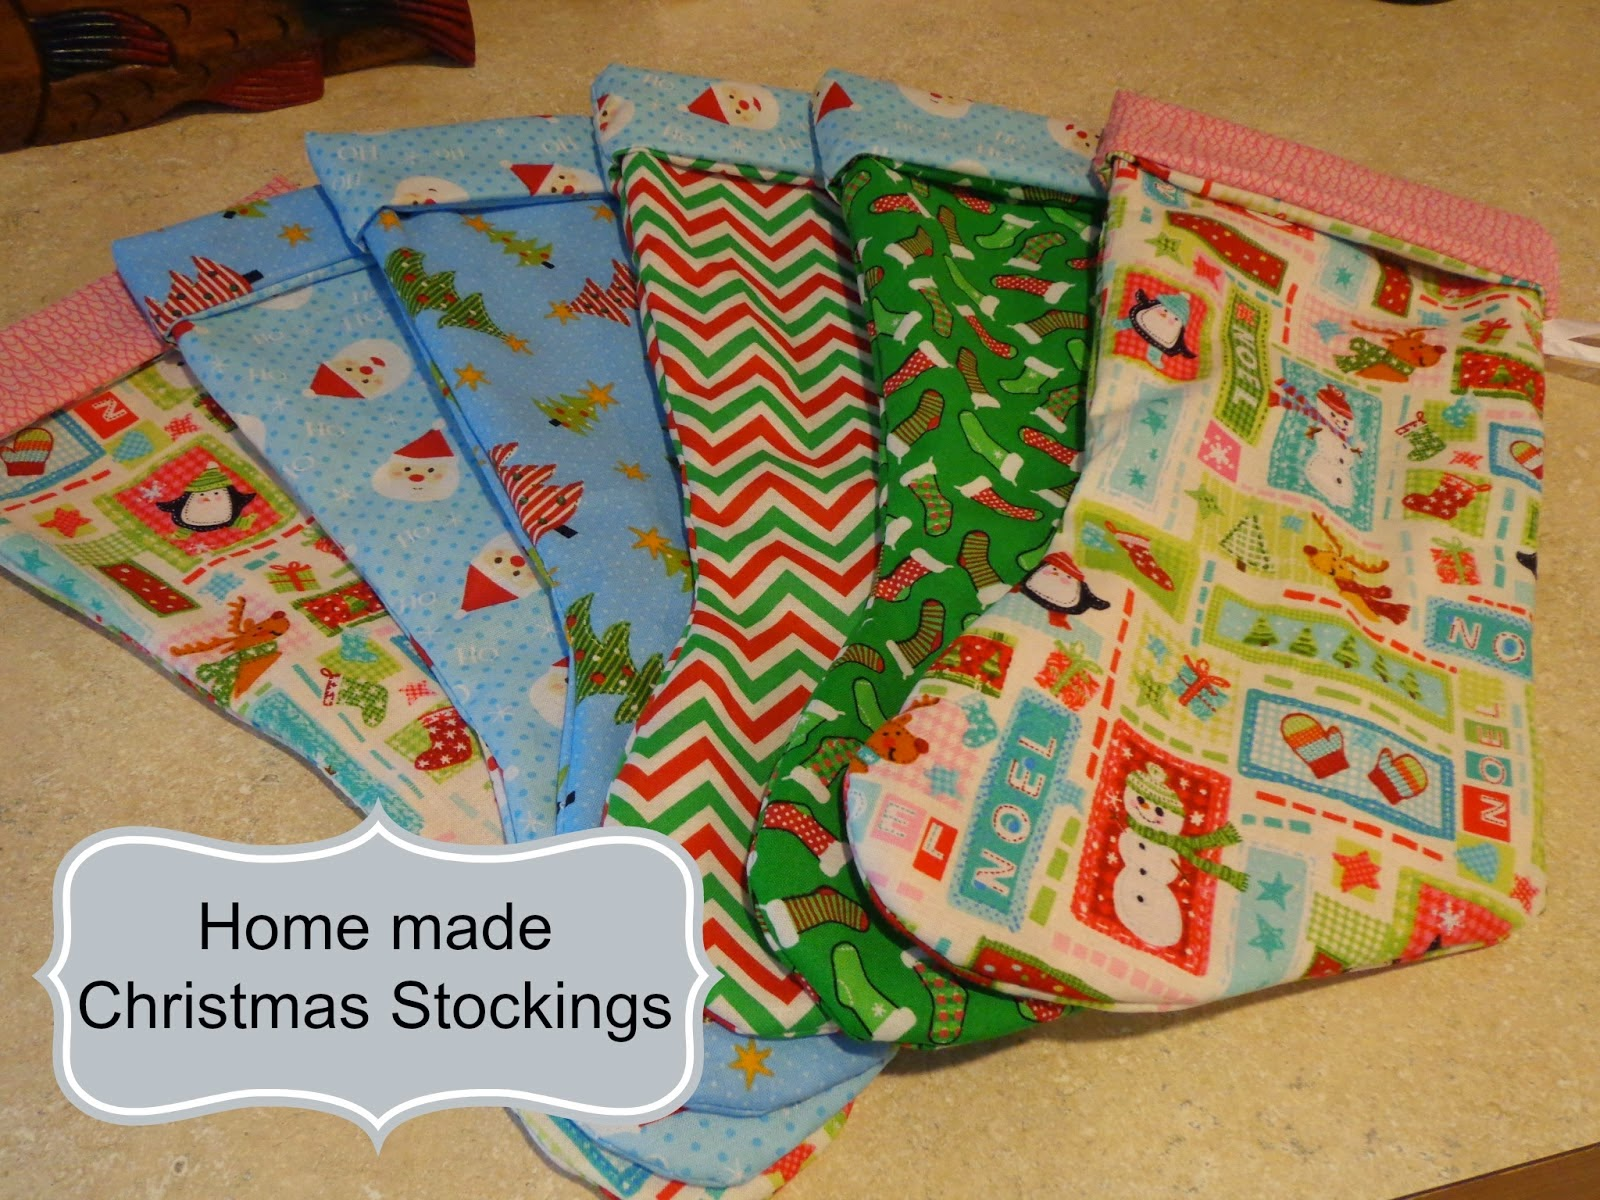 http://www.hackedbykate.com/2014/06/home-made-christmas-stockings.html